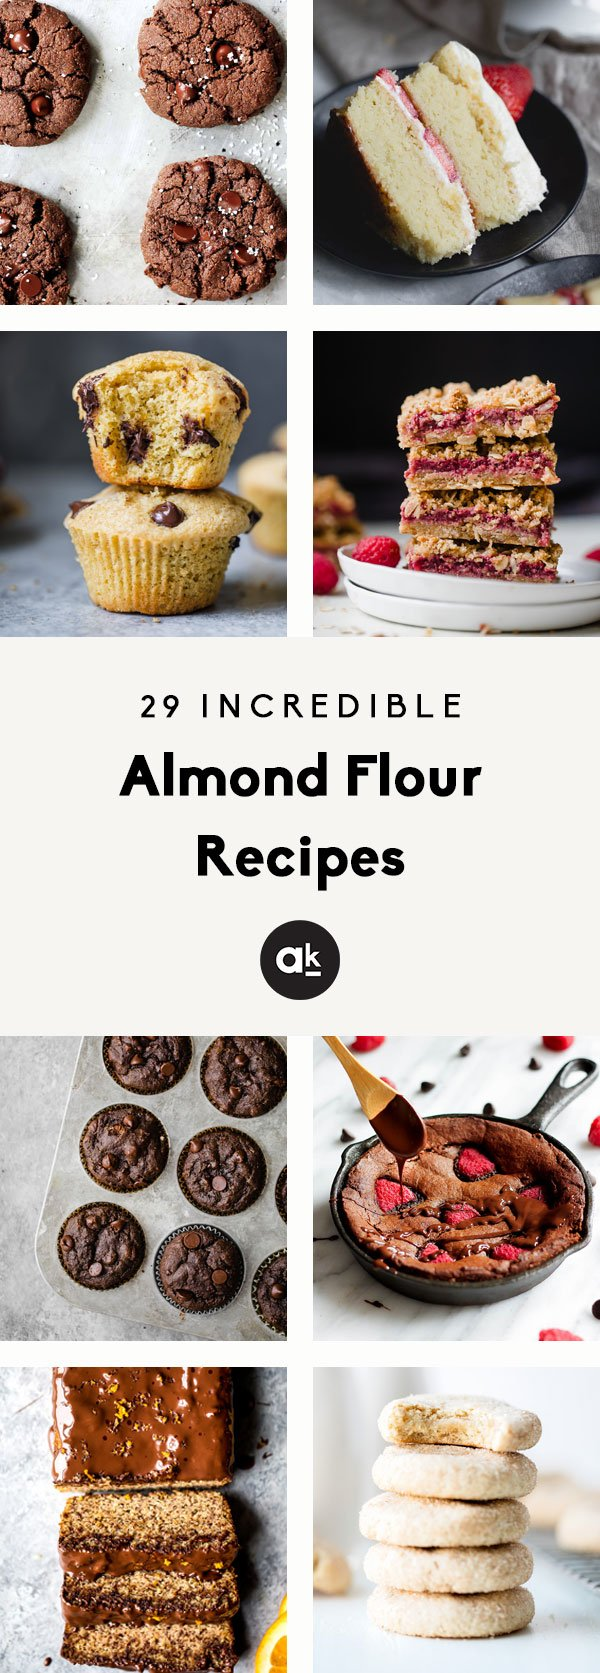 Incredible almond flour recipes that make the perfect snack or treat! These 29 recipes have tons of paleo and gluten free options that everyone will love.